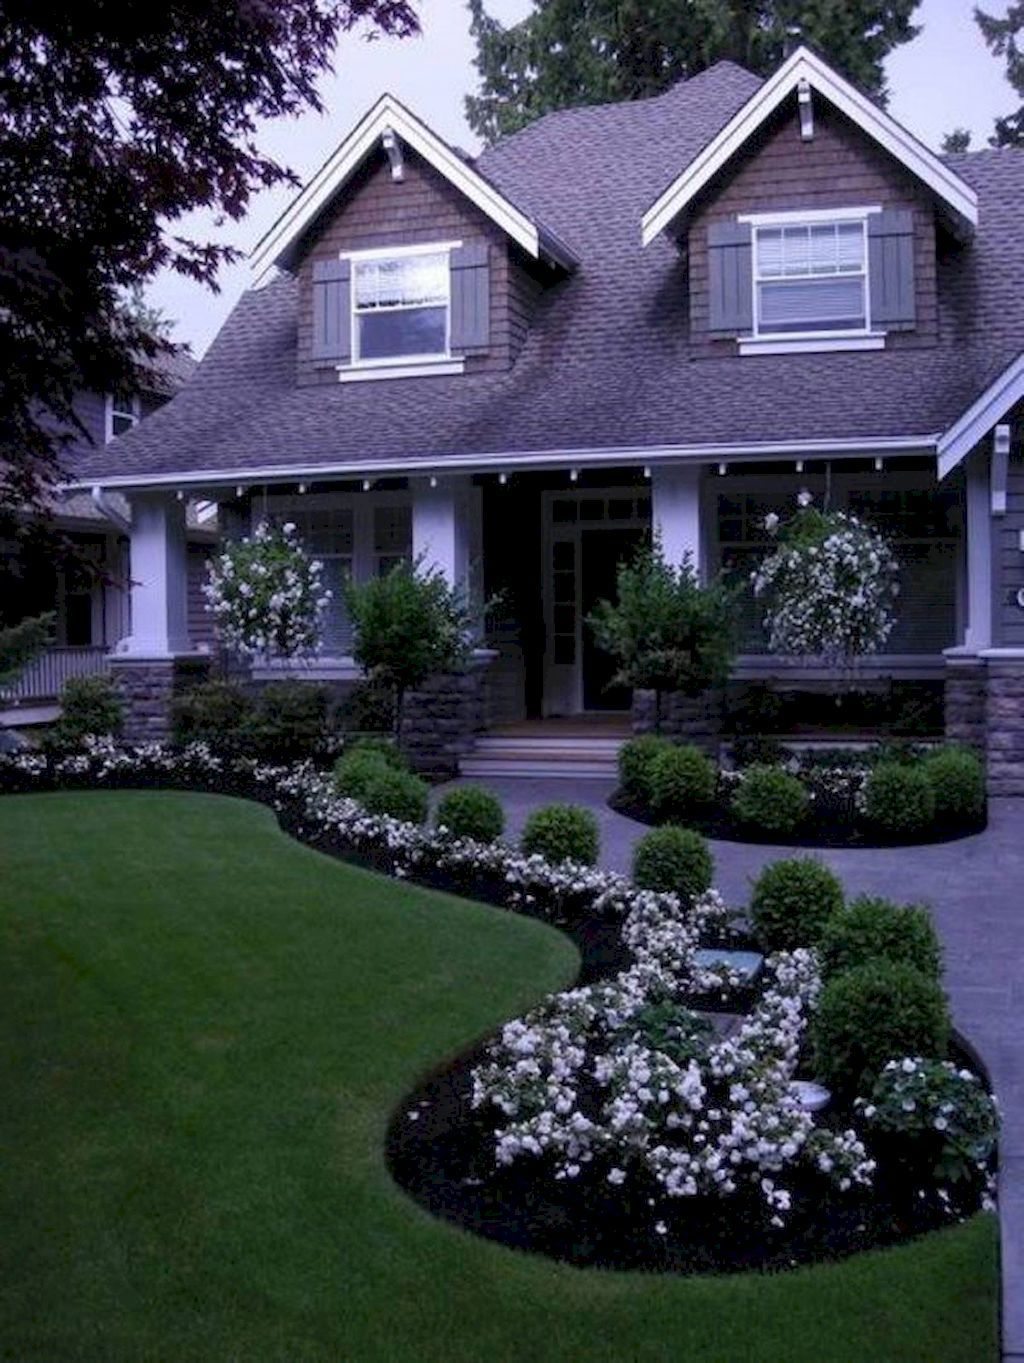 40 beautiful front yard landscaping ideas yard for Front yard lawn ideas